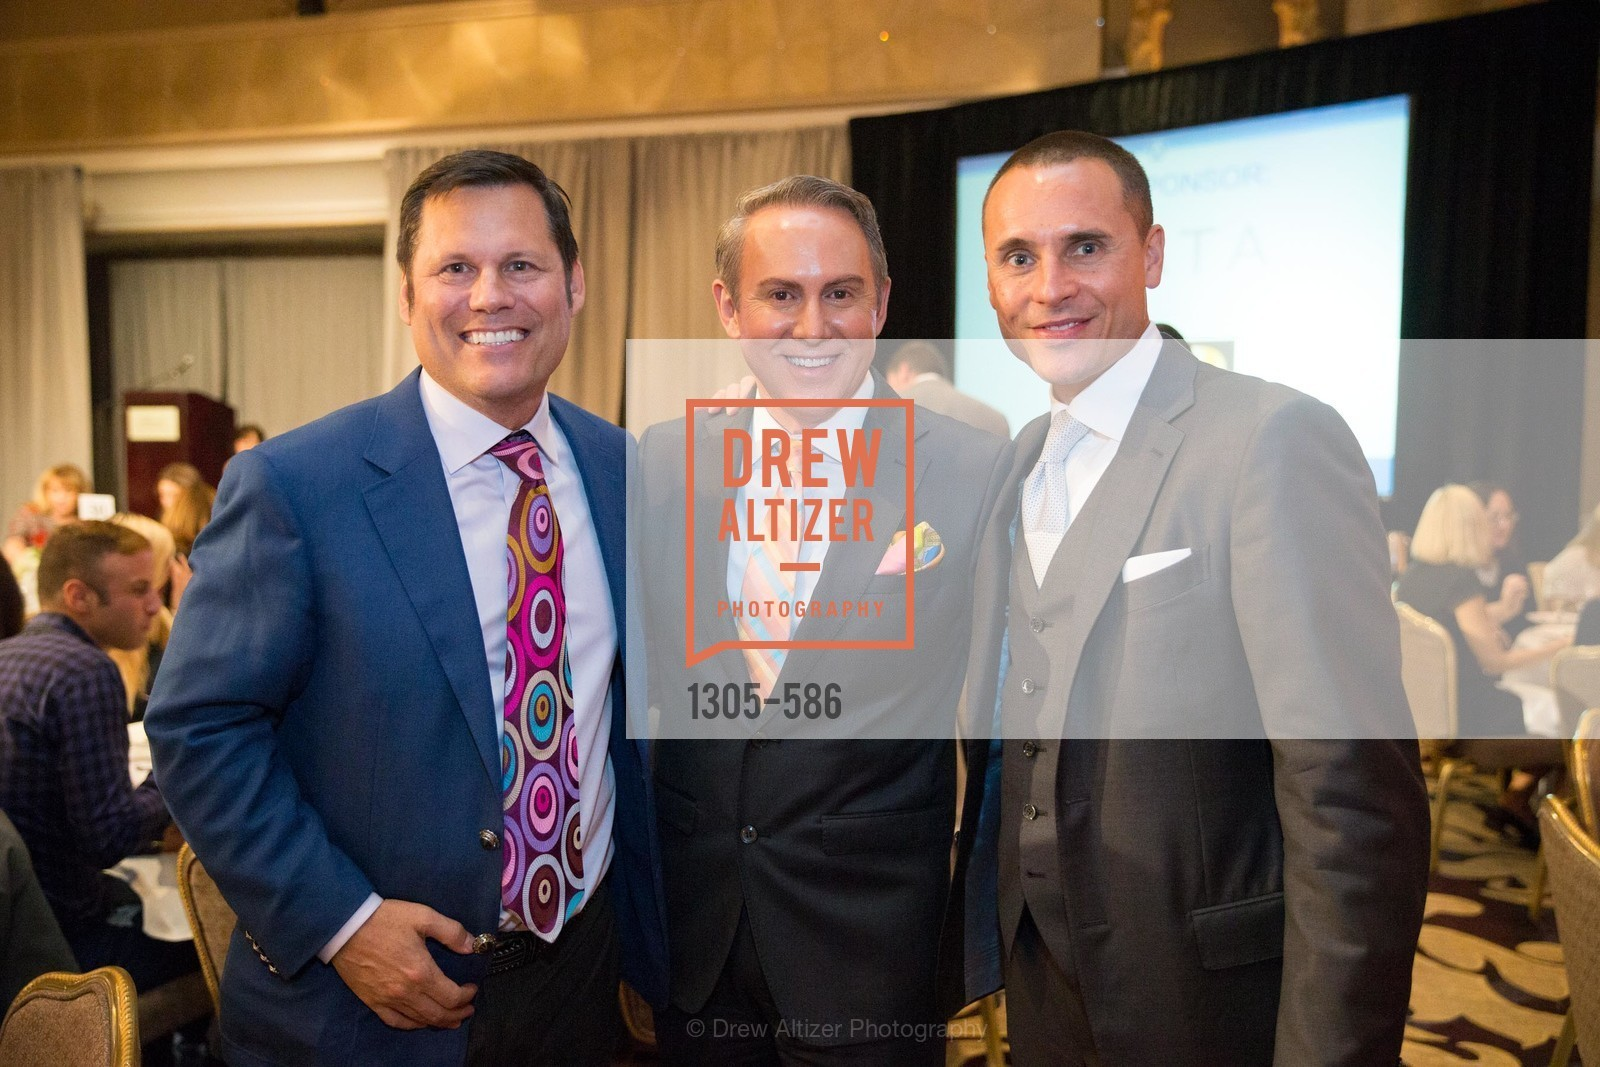 Mark Calvano, Joel Goodrich, Jeff Garelick, 2014 Bay Area ARTHRITIS AUXILLIARY Benefit & Fashion Show, US, October 1st, 2014,Drew Altizer, Drew Altizer Photography, full-service agency, private events, San Francisco photographer, photographer california